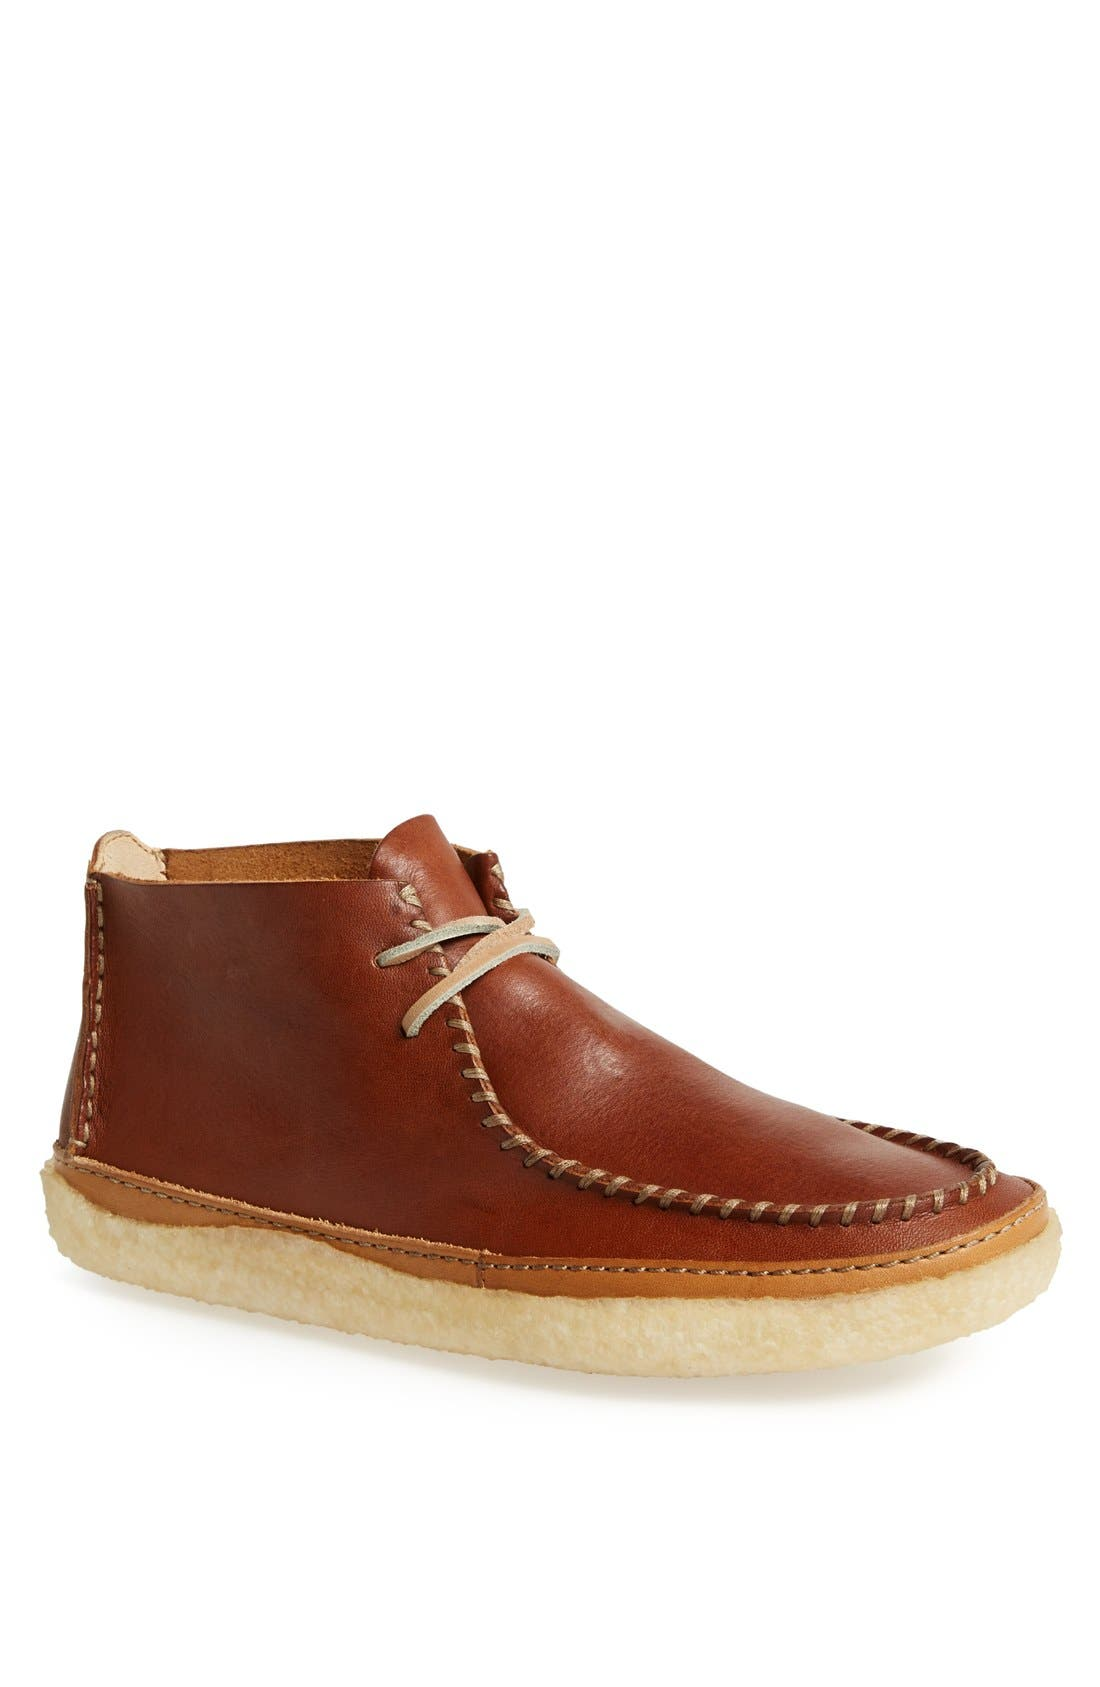 Alternate Image 1 Selected - Clarks® Originals 'Vulco Spear' Chukka Boot (Men)